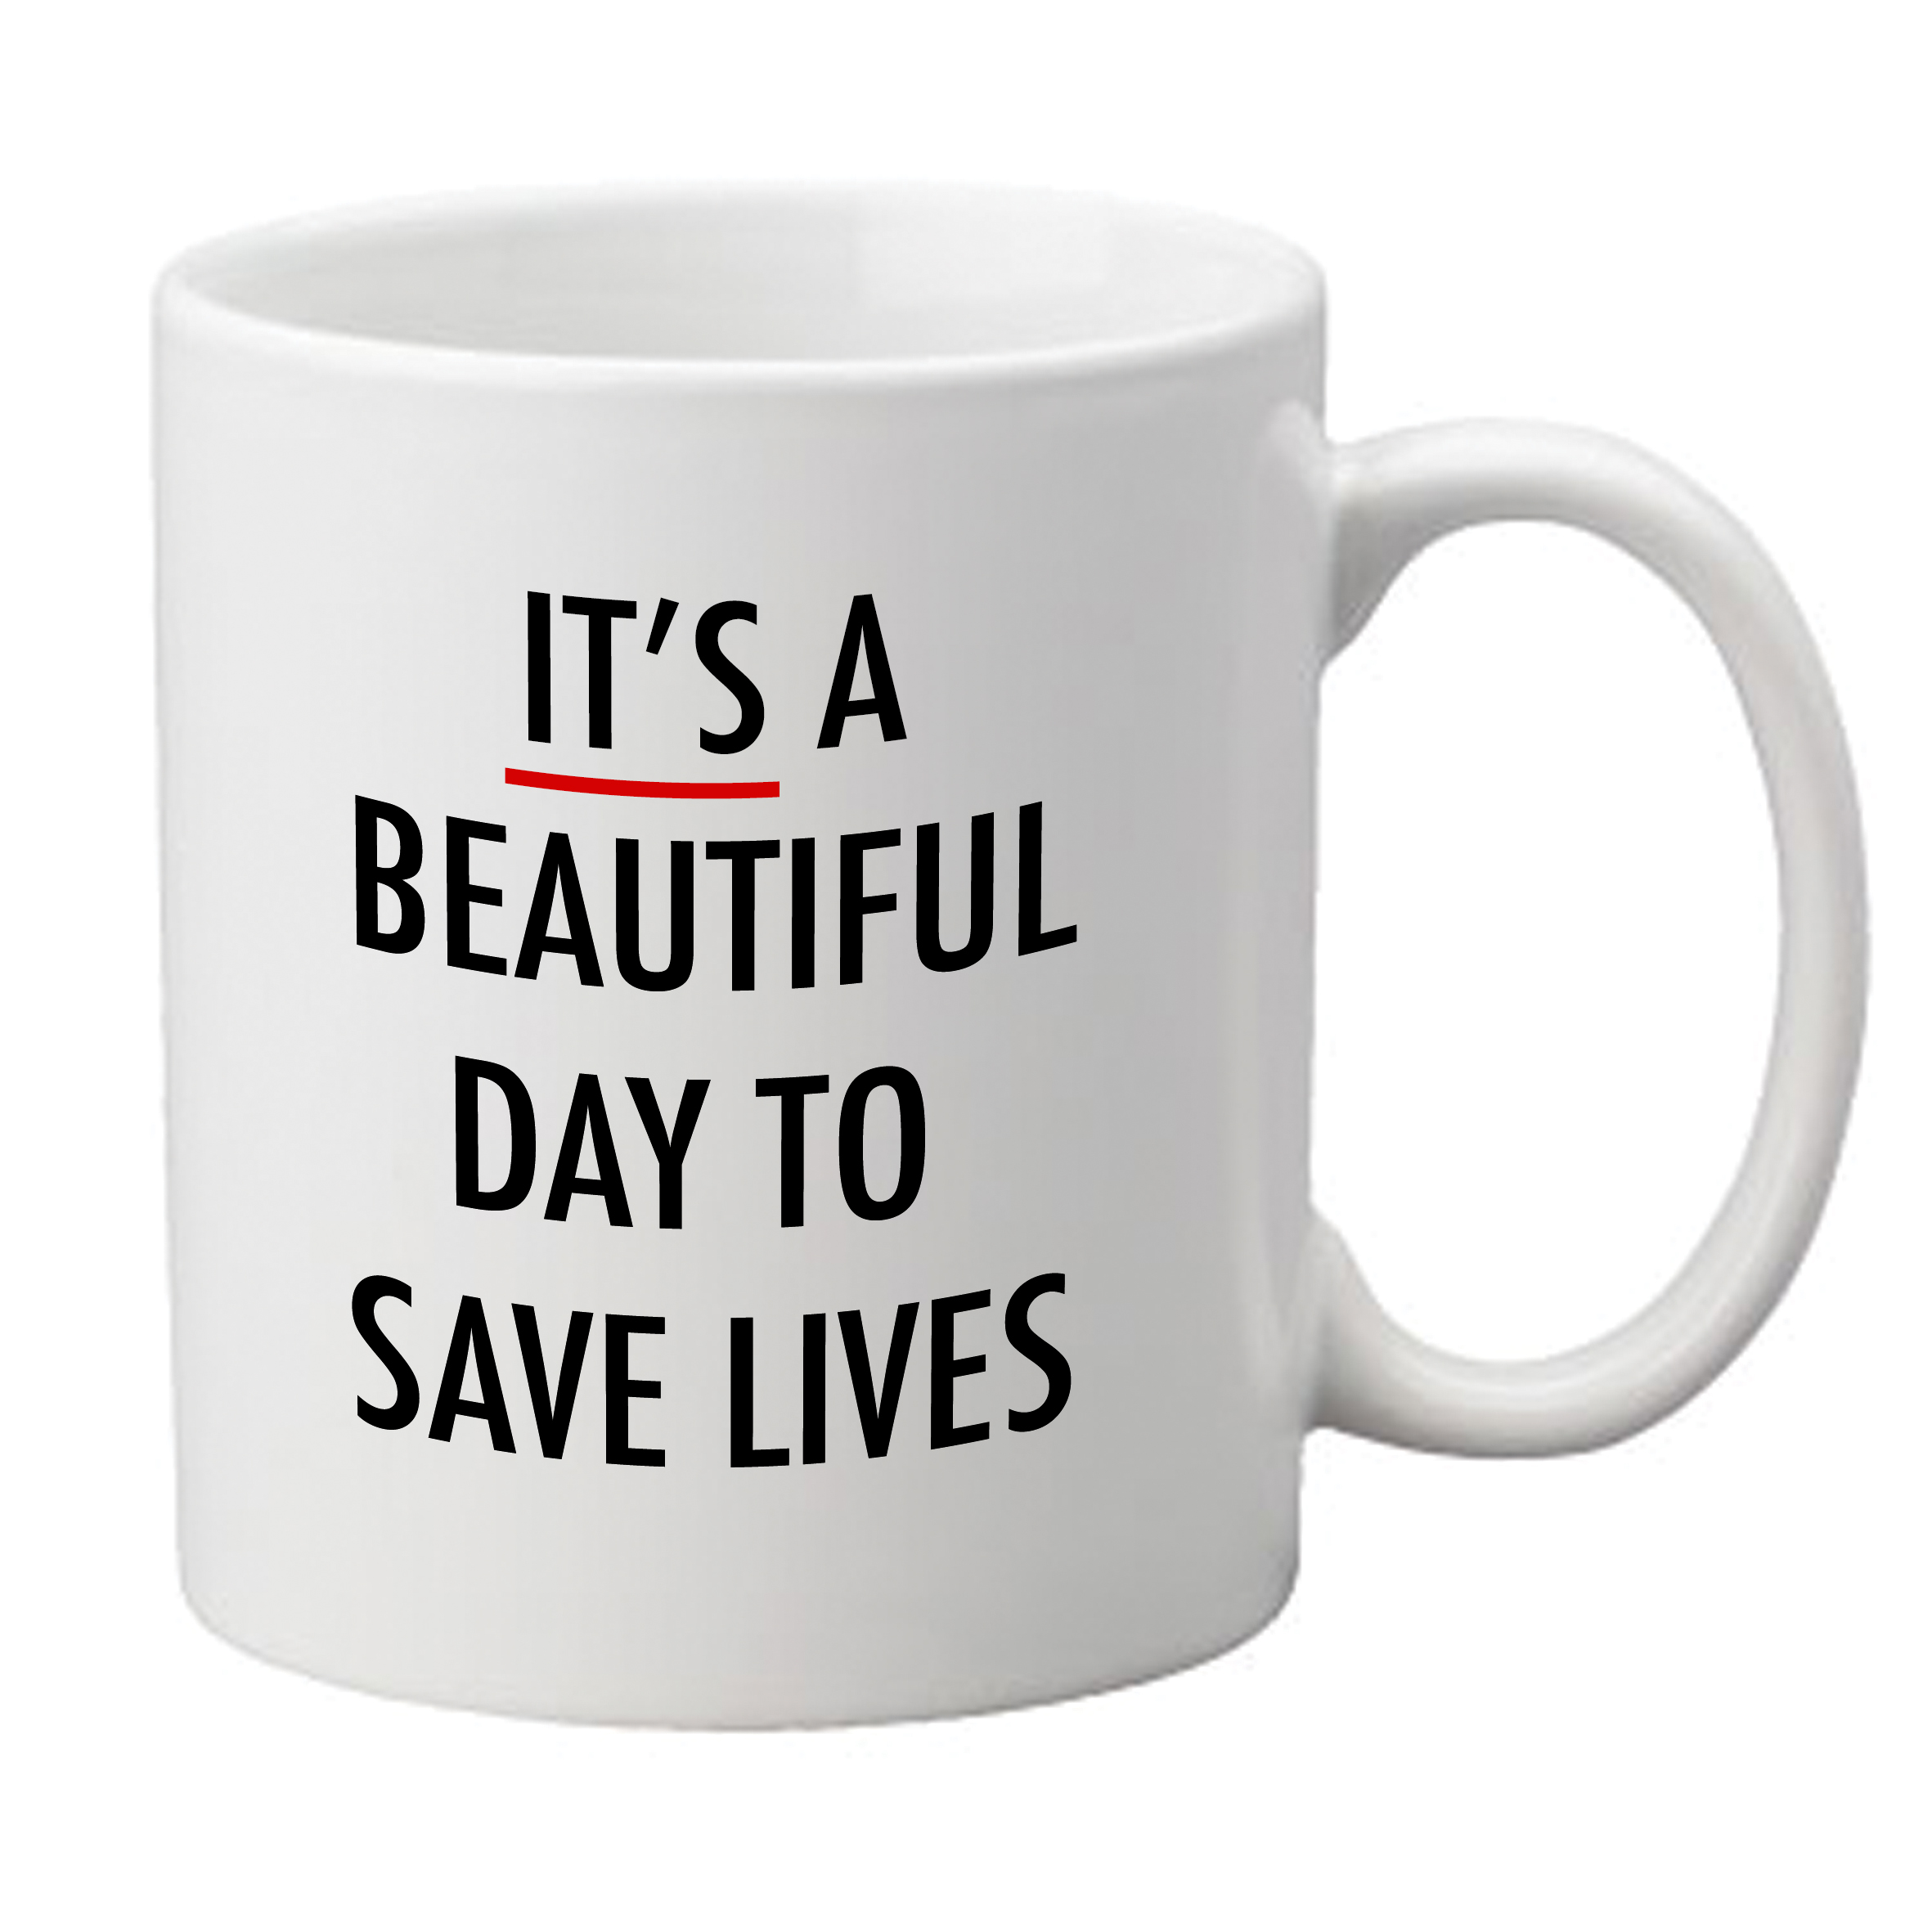 It's a Beautiful Day to save lives - Medical Mug